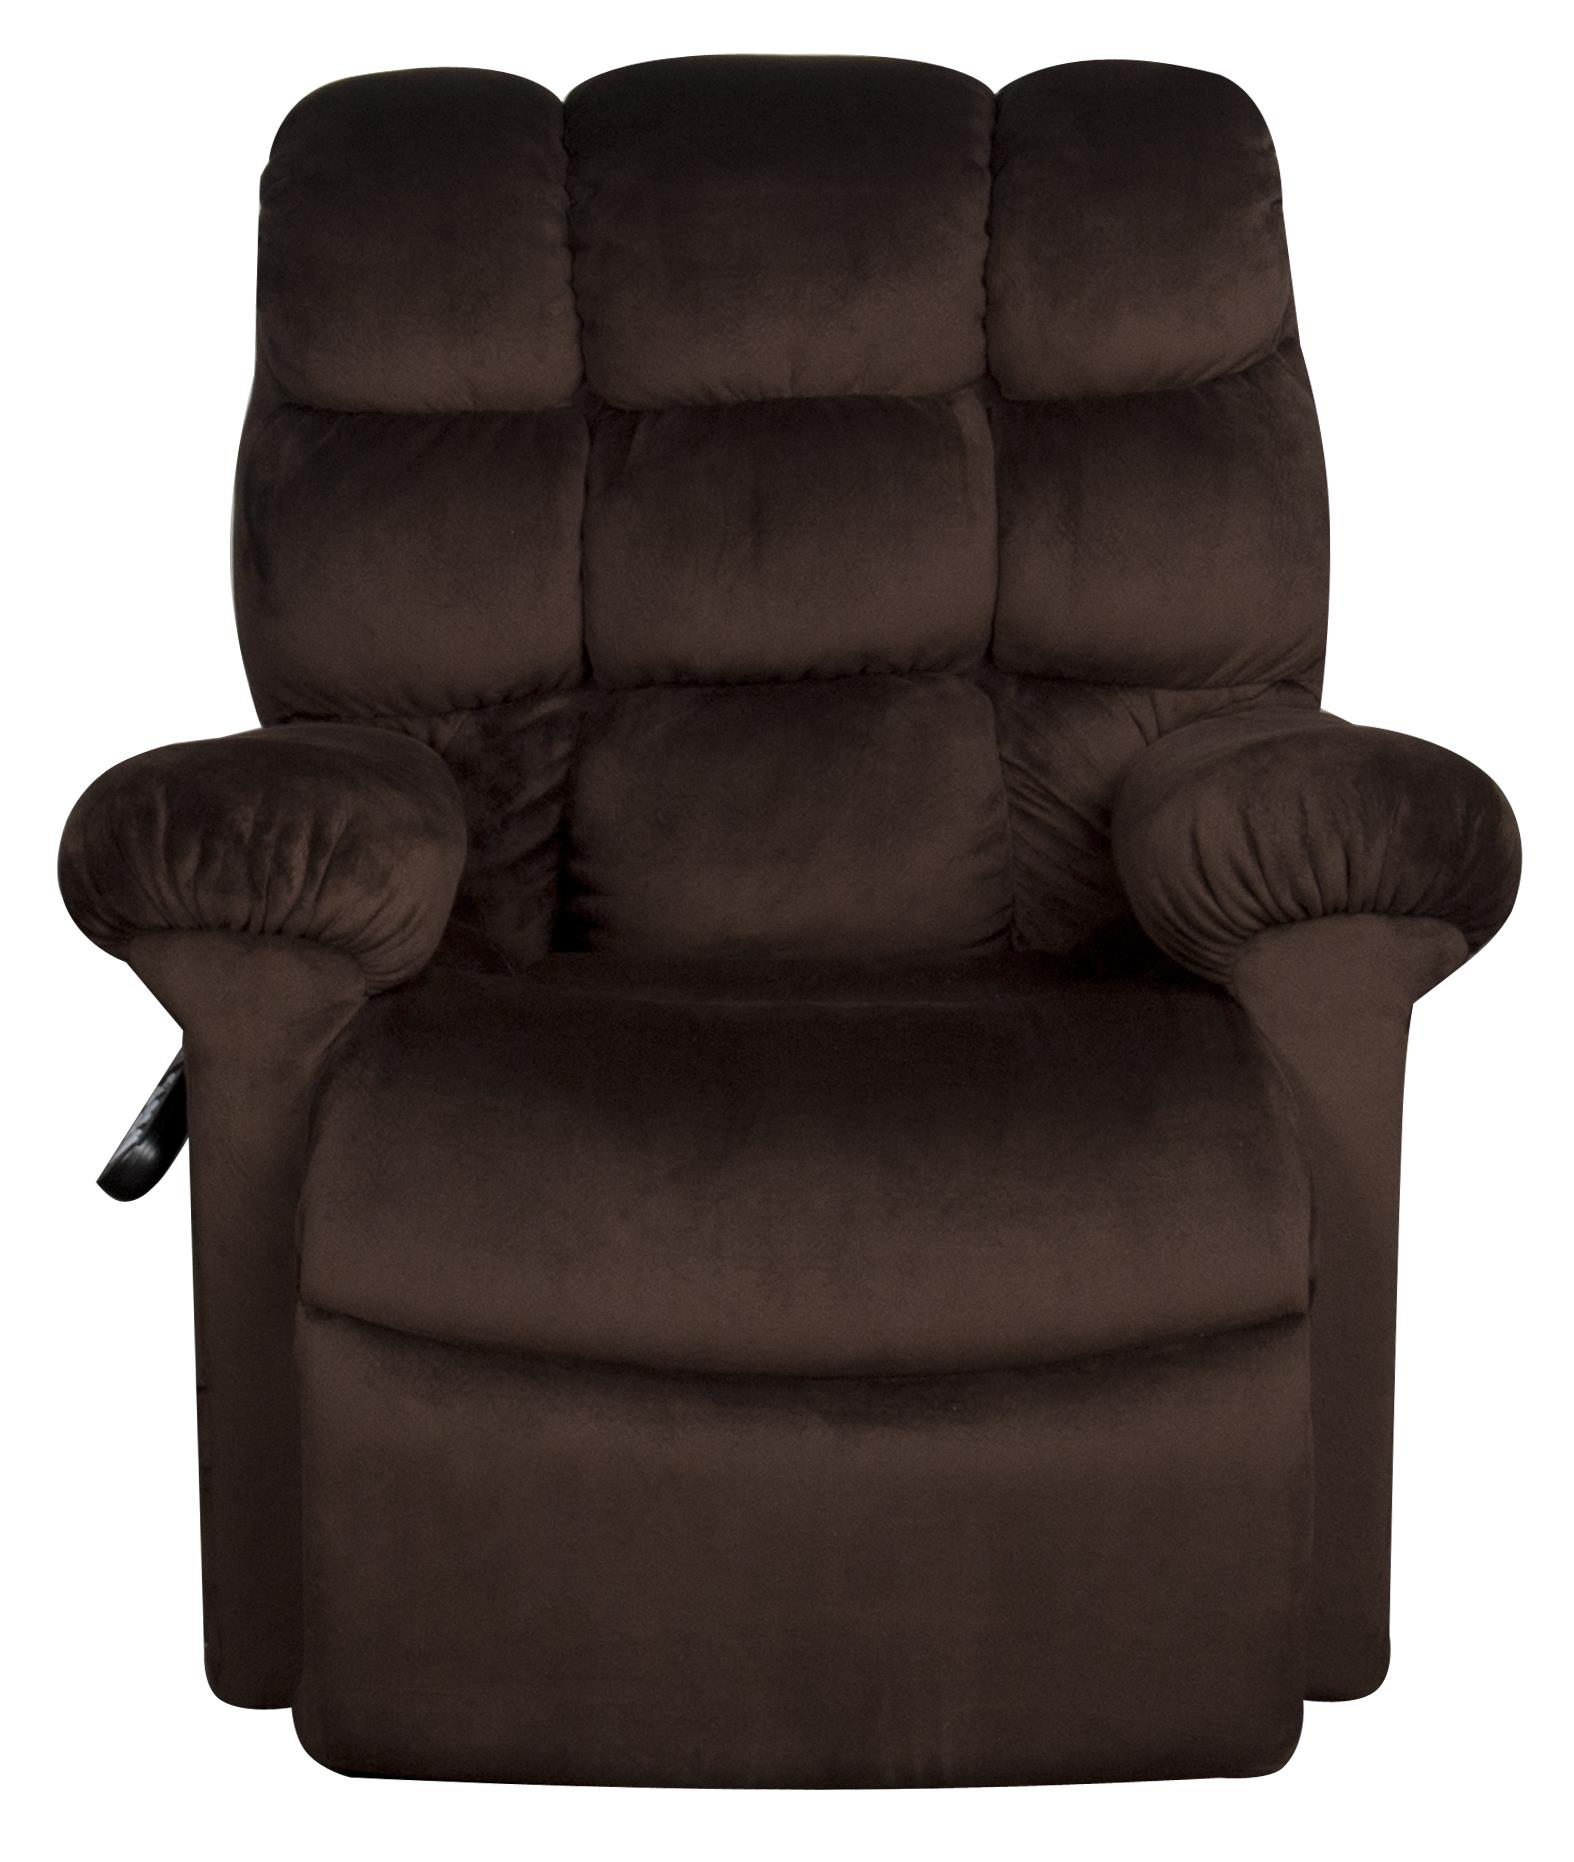 Morris Home Jerome Jerome Power Lift Chair with Heat - Item Number: 512025937